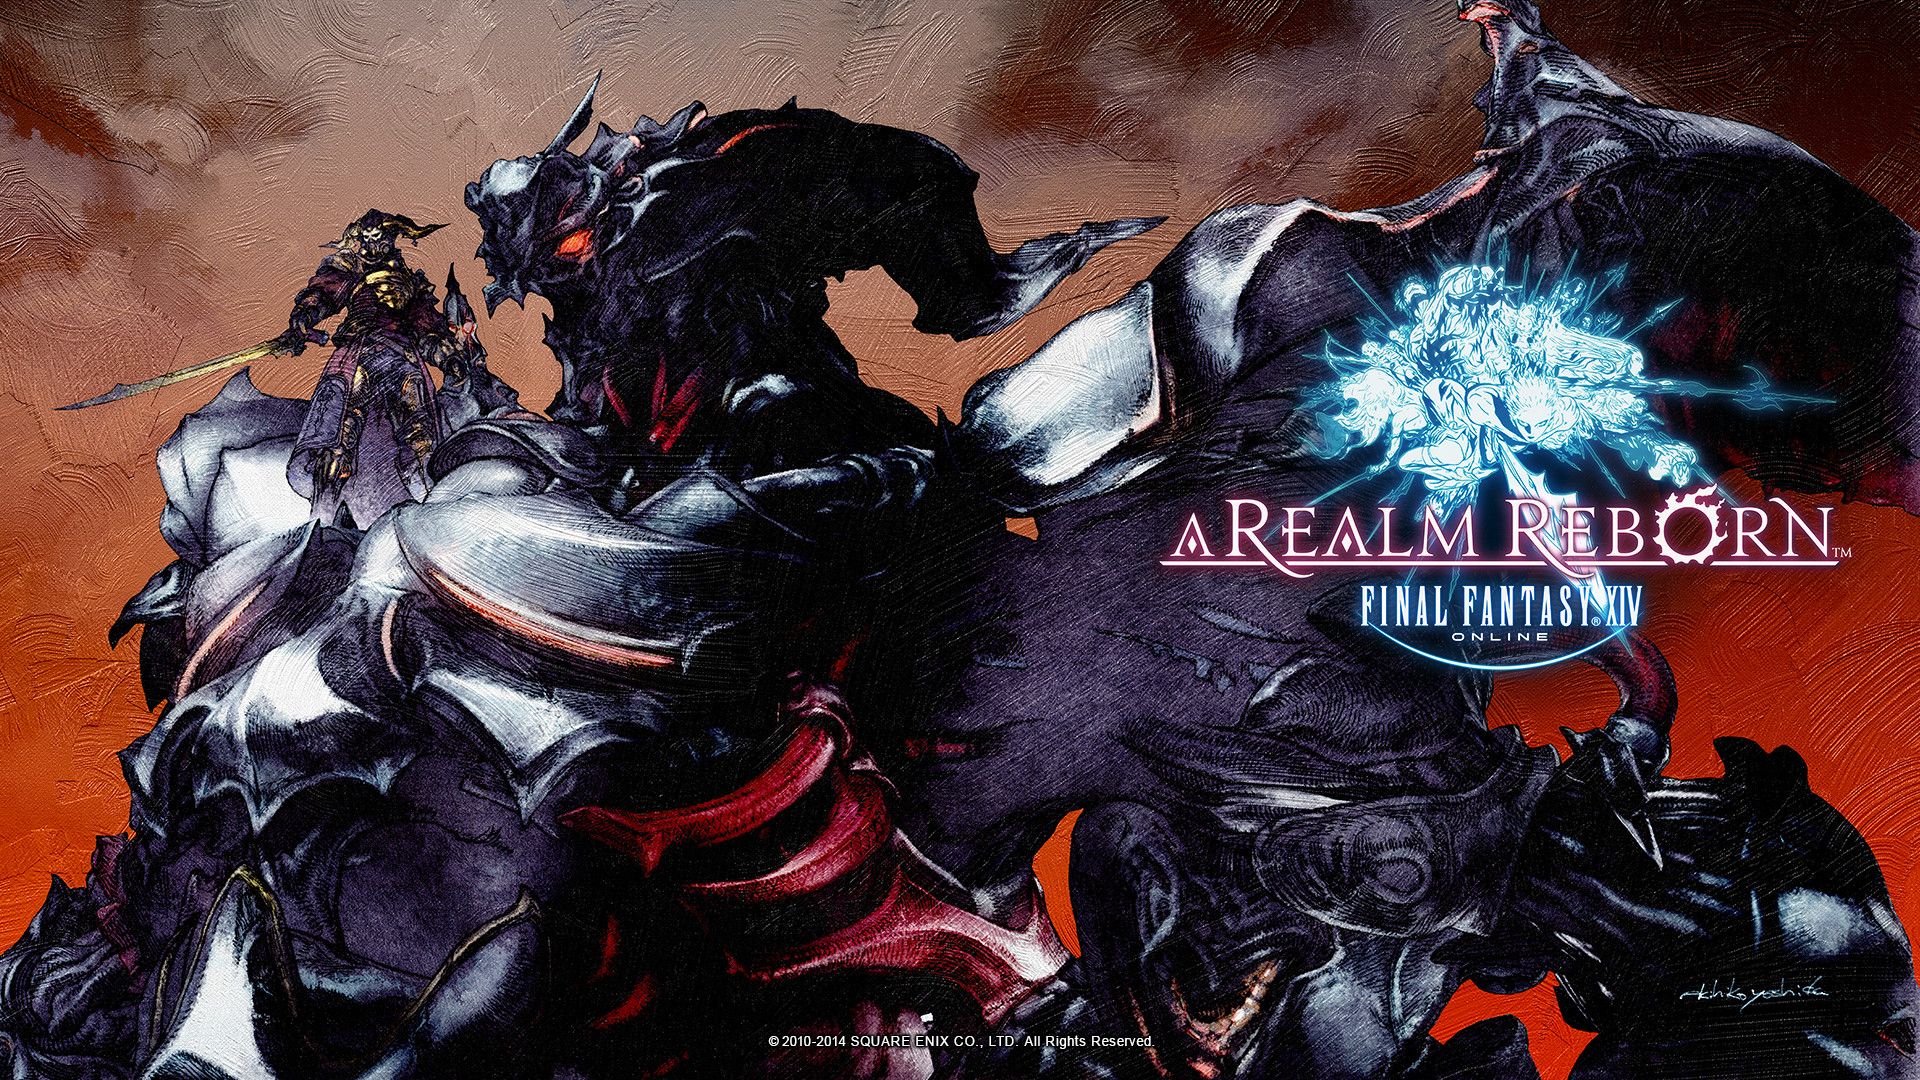 Fantasy XIV: A Realm Reborn Wallpapers Featuring Gaius and Bahamut .